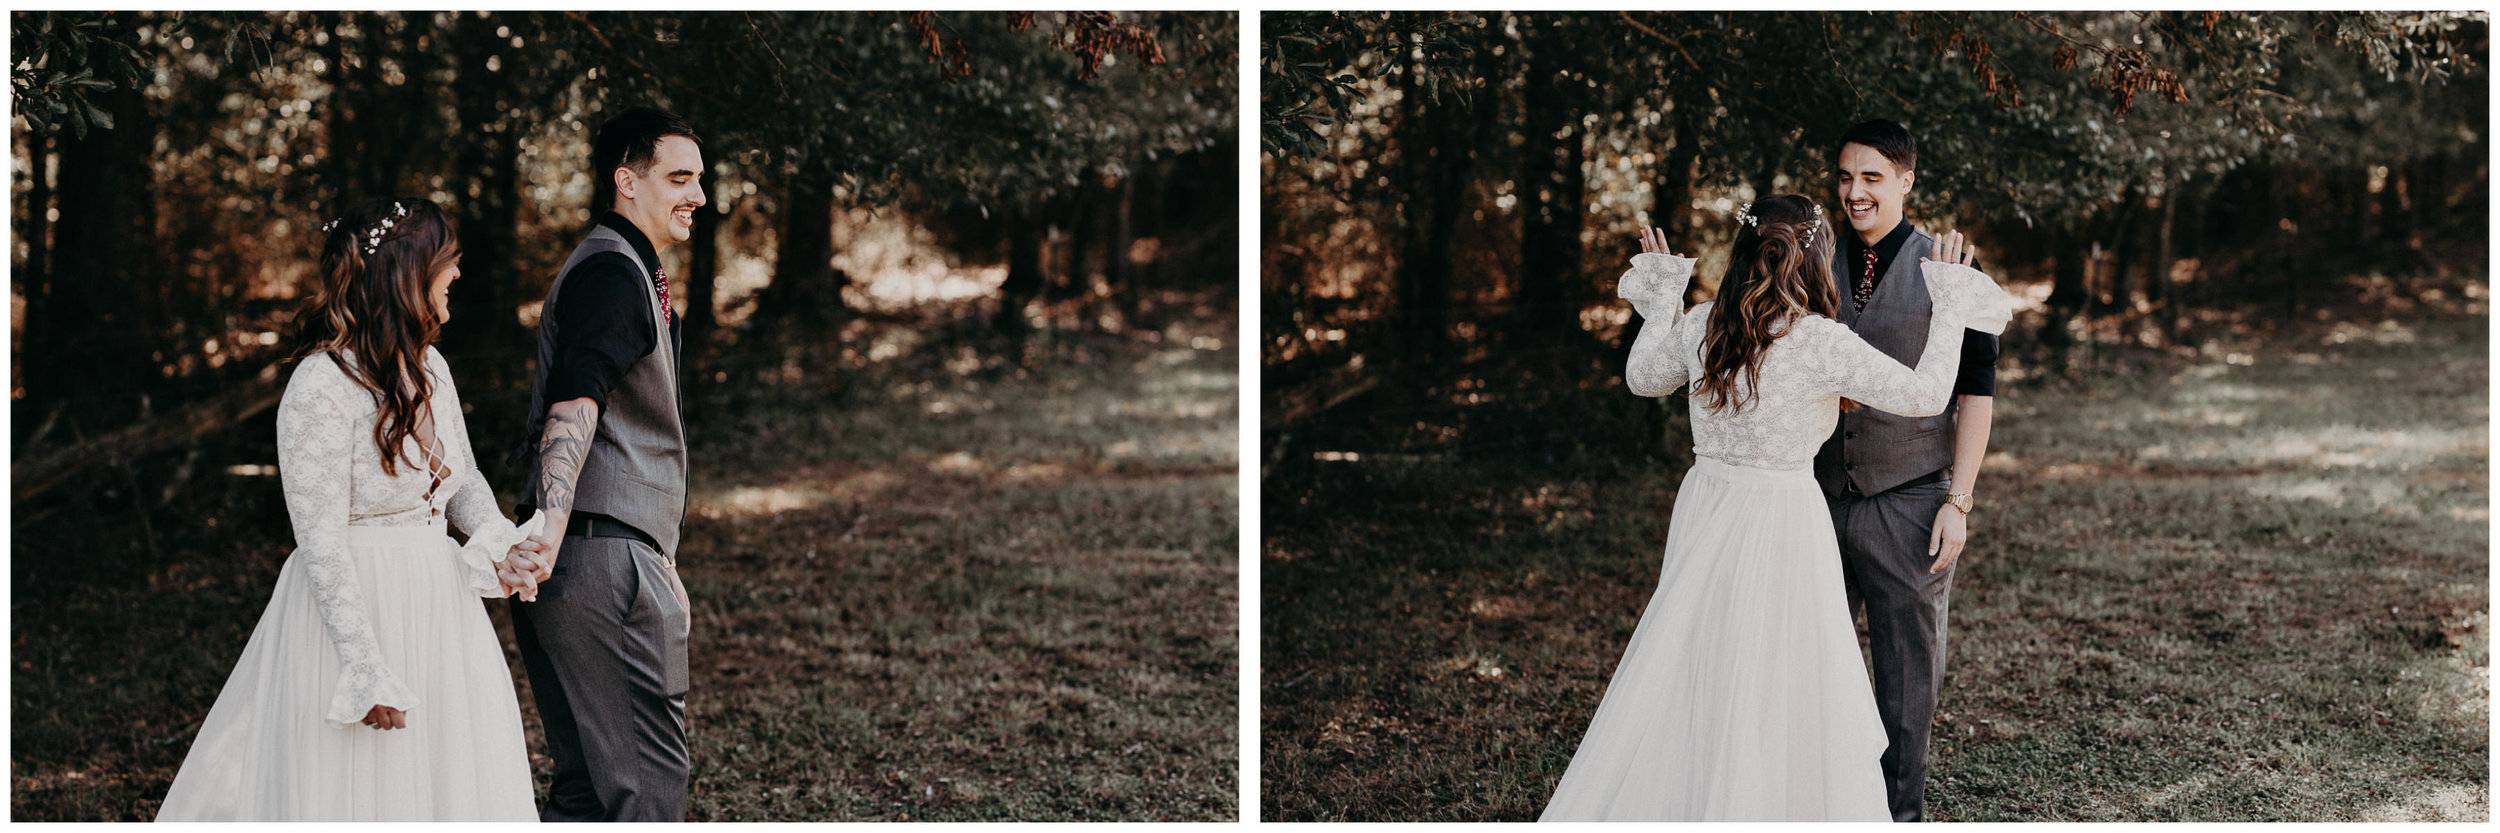 49 - Wedding first look : Atlanta wedding photographer .jpg